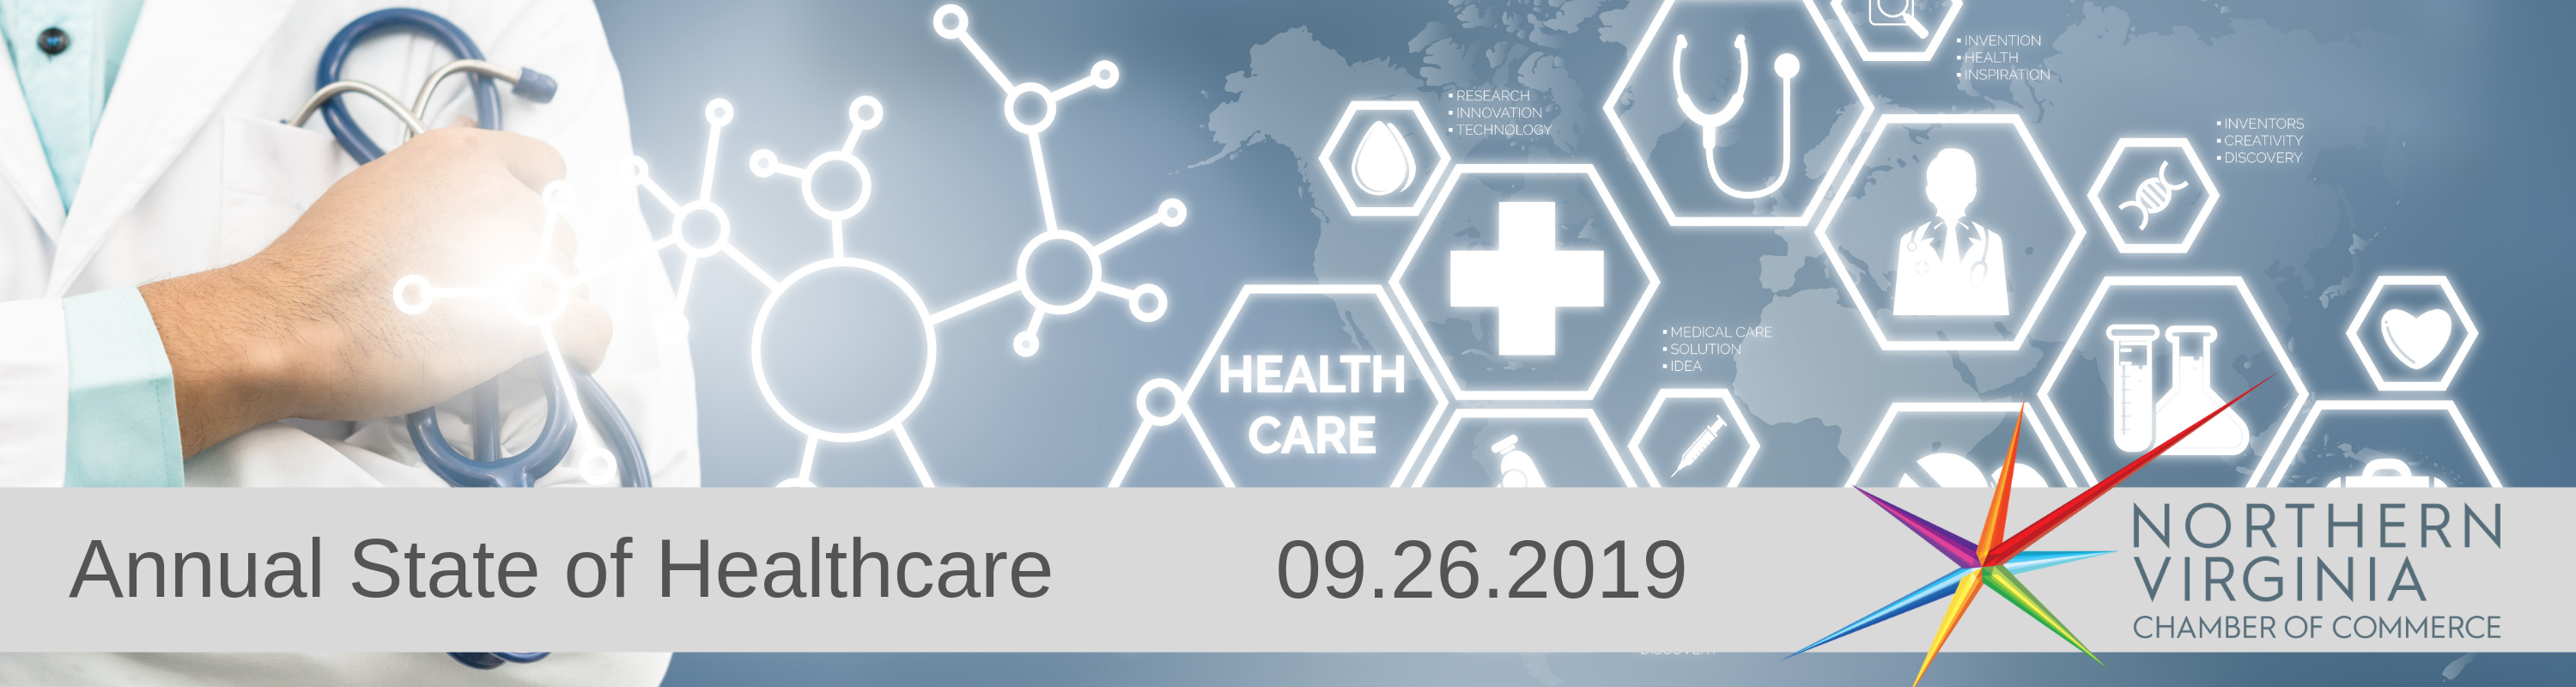 Annual State of Healthcare